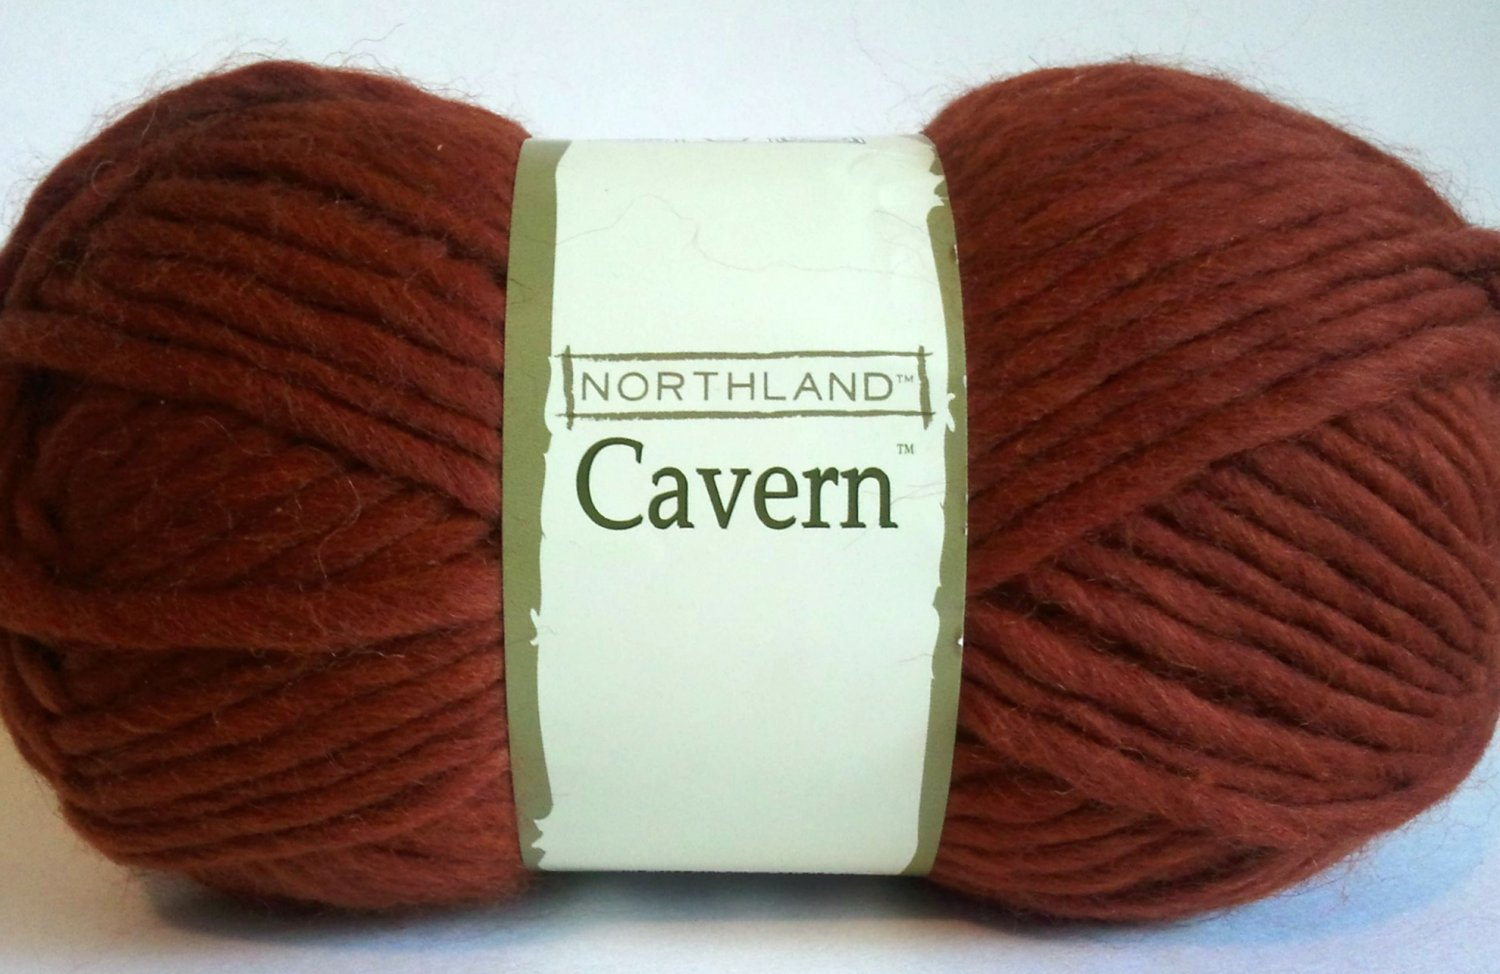 Northland Cavern Acrylic Wool Blend Yarn 3.5 oz Glacier Lava Brown Rust Super Bulky 6